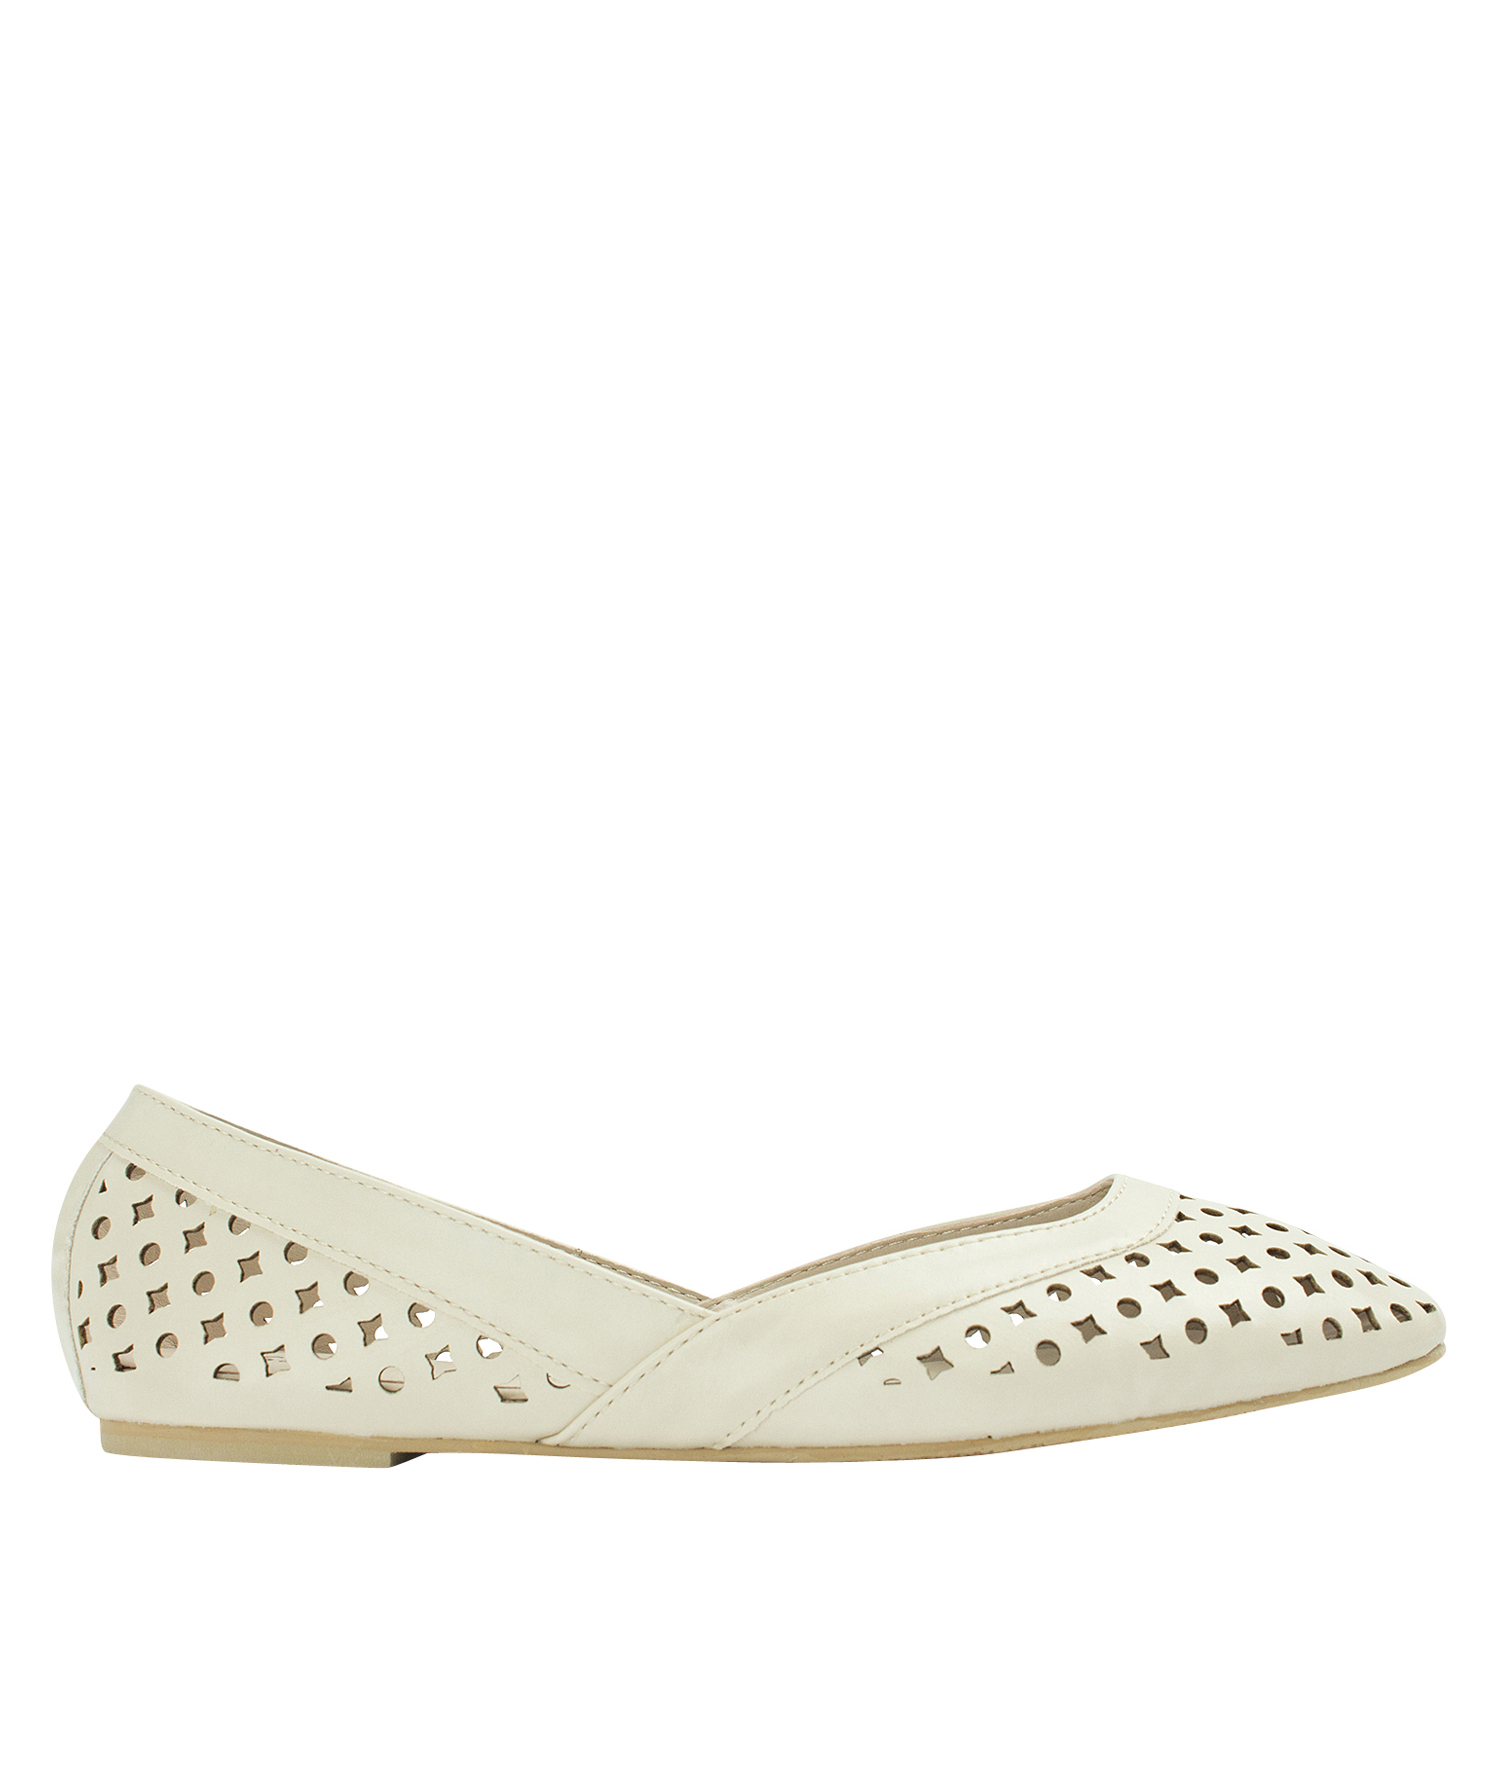 AnnaKastle Womens Geometric Cut Out Flat Shoes Beige